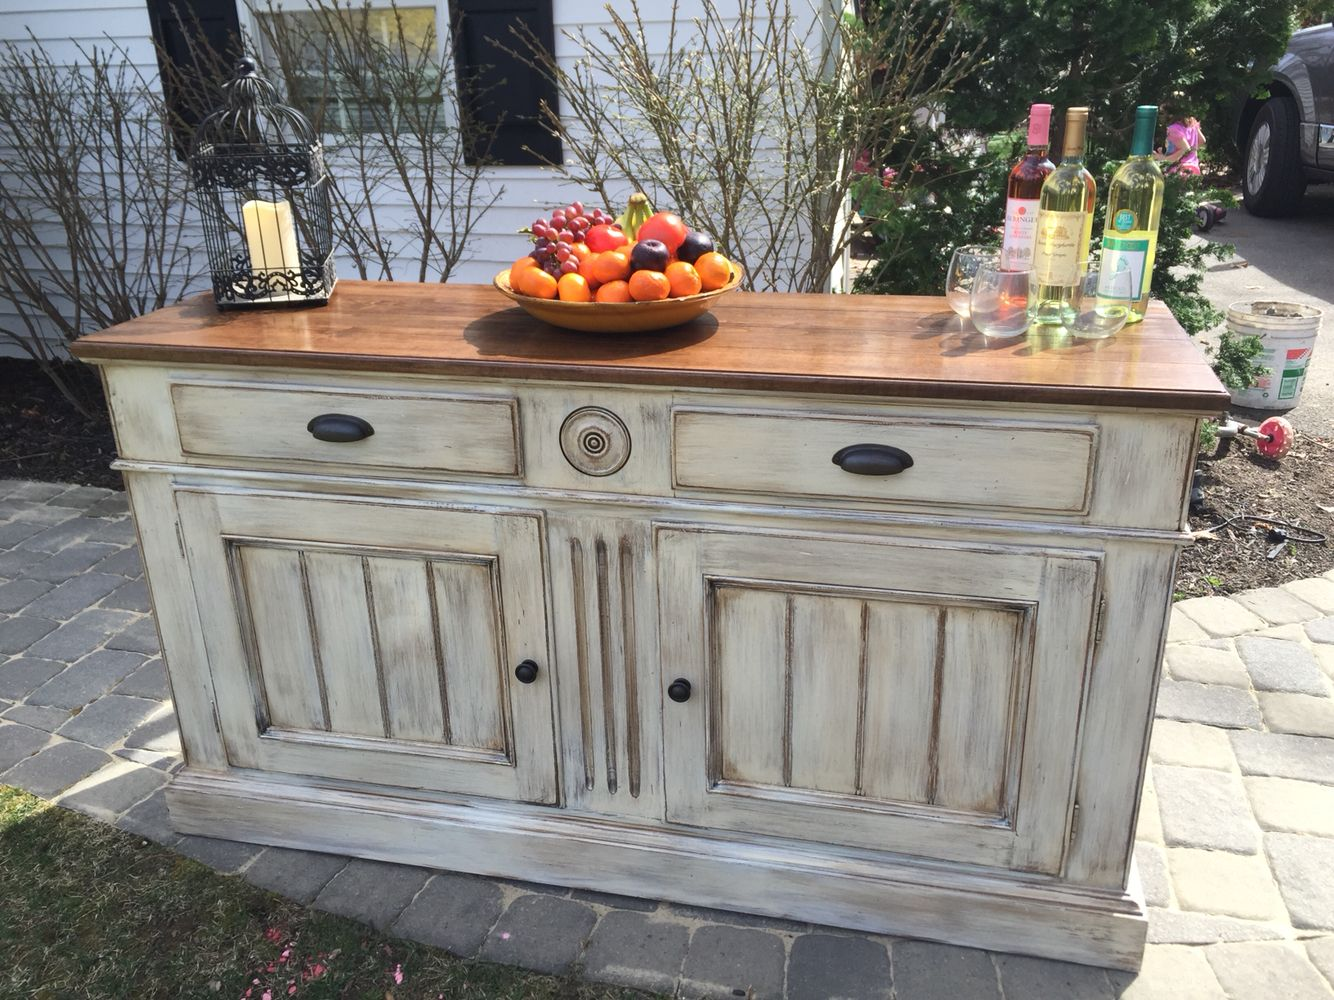 Charmant Refinished Ethan Allen Buffet Done In Several Shades Of Chalk Paint, Aged  With A Hazelnut Glaze Then Sealed . Like Us On Facebook Deja Vu Furniture  Design ...